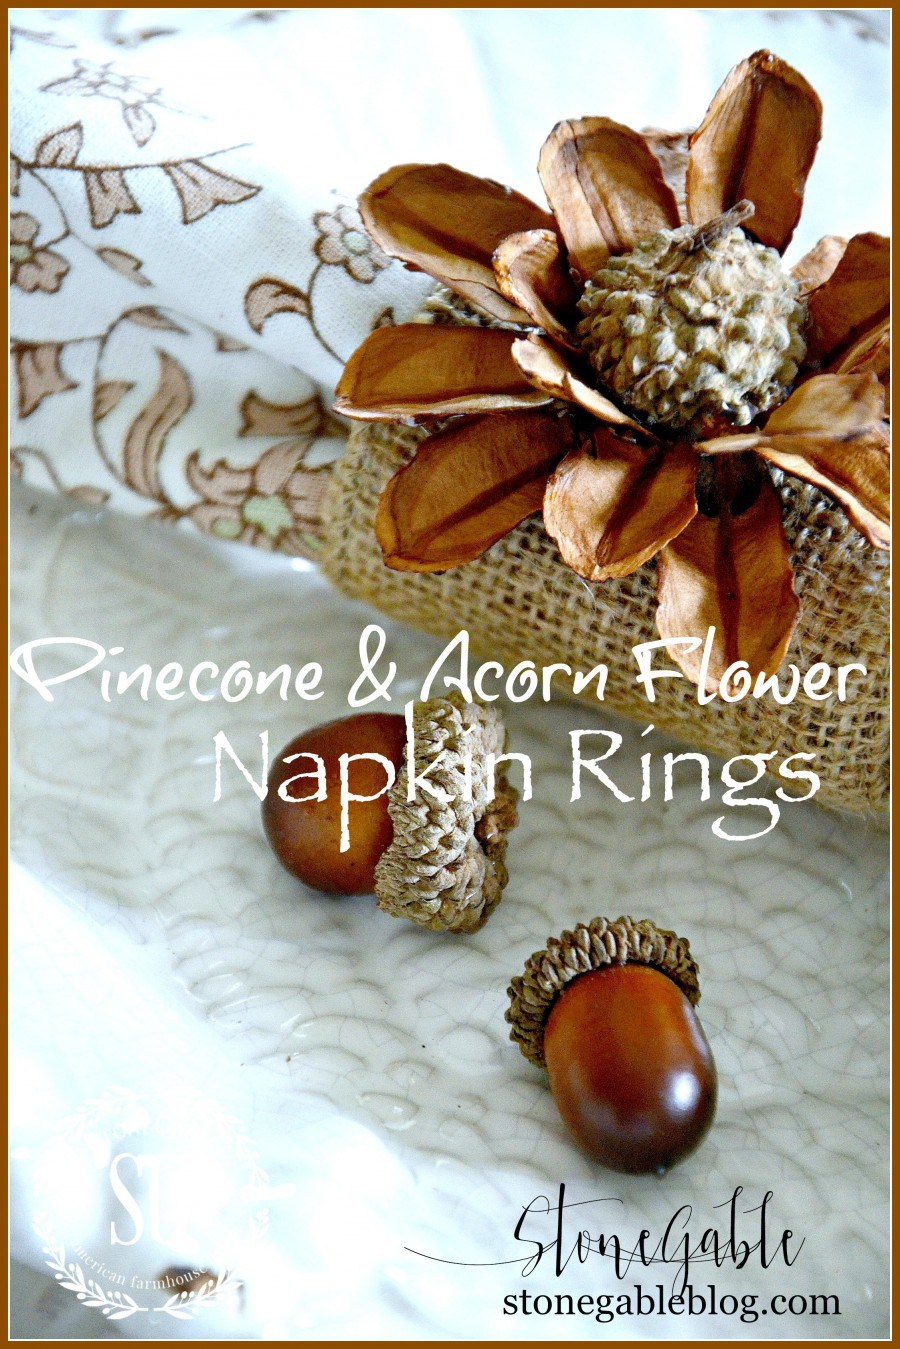 pinecone-and-acorn-flower-napkin-rings-stonegableblog-com_